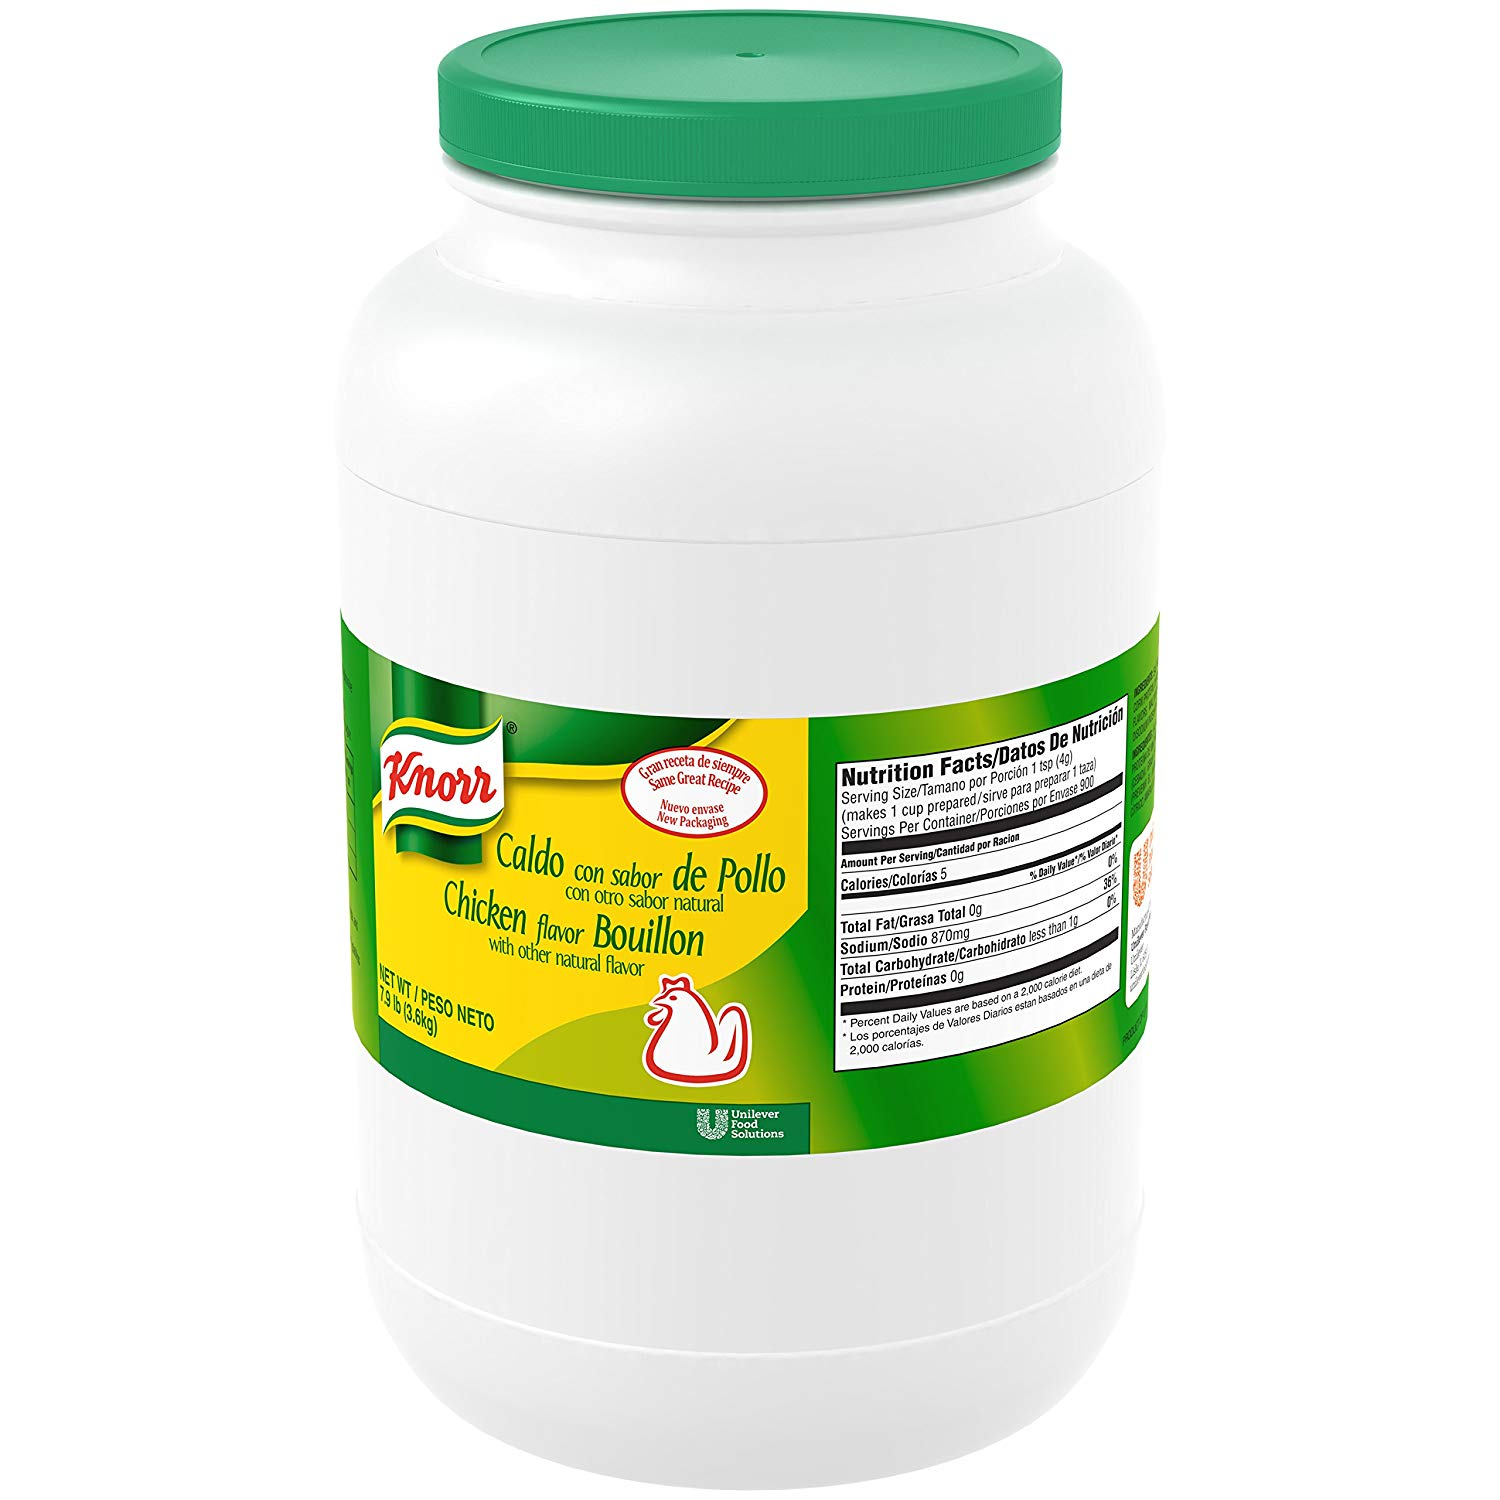 7.9-Lbs Knorr Professional Caldo de Pollo Chicken Bouillon Base (Chicken)